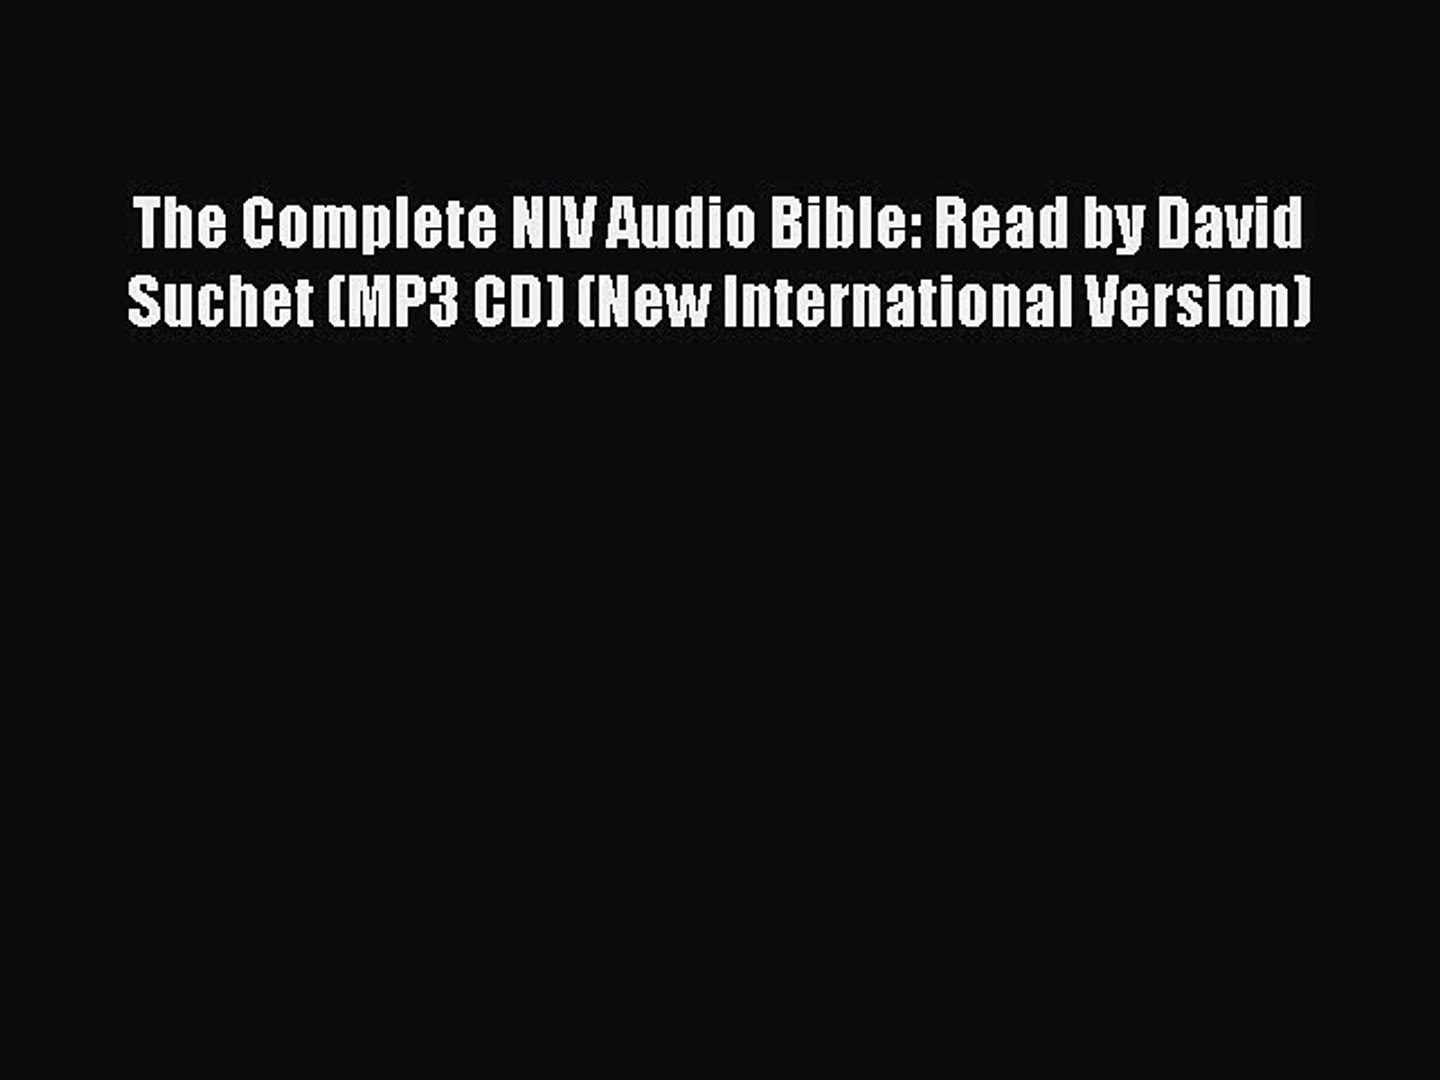 The Complete NIV Audio Bible: Read by David Suchet (MP3 CD) (New  International Version) Free